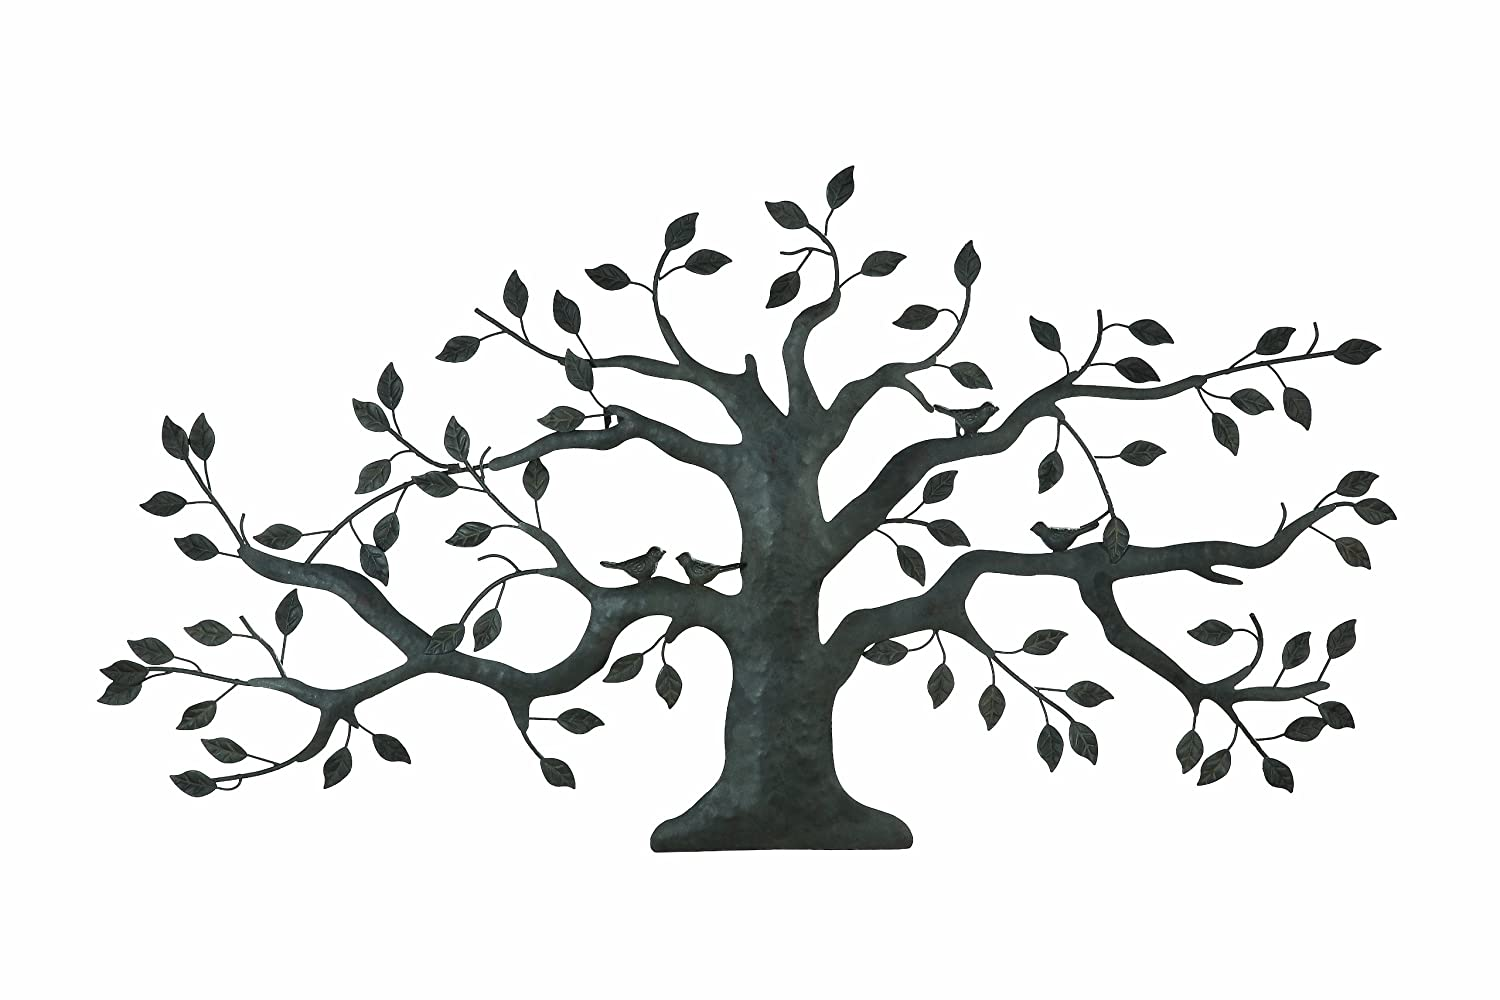 Family Tree Wall Mural Tree Of Life Metal Wall Art Large Decoration With Branch